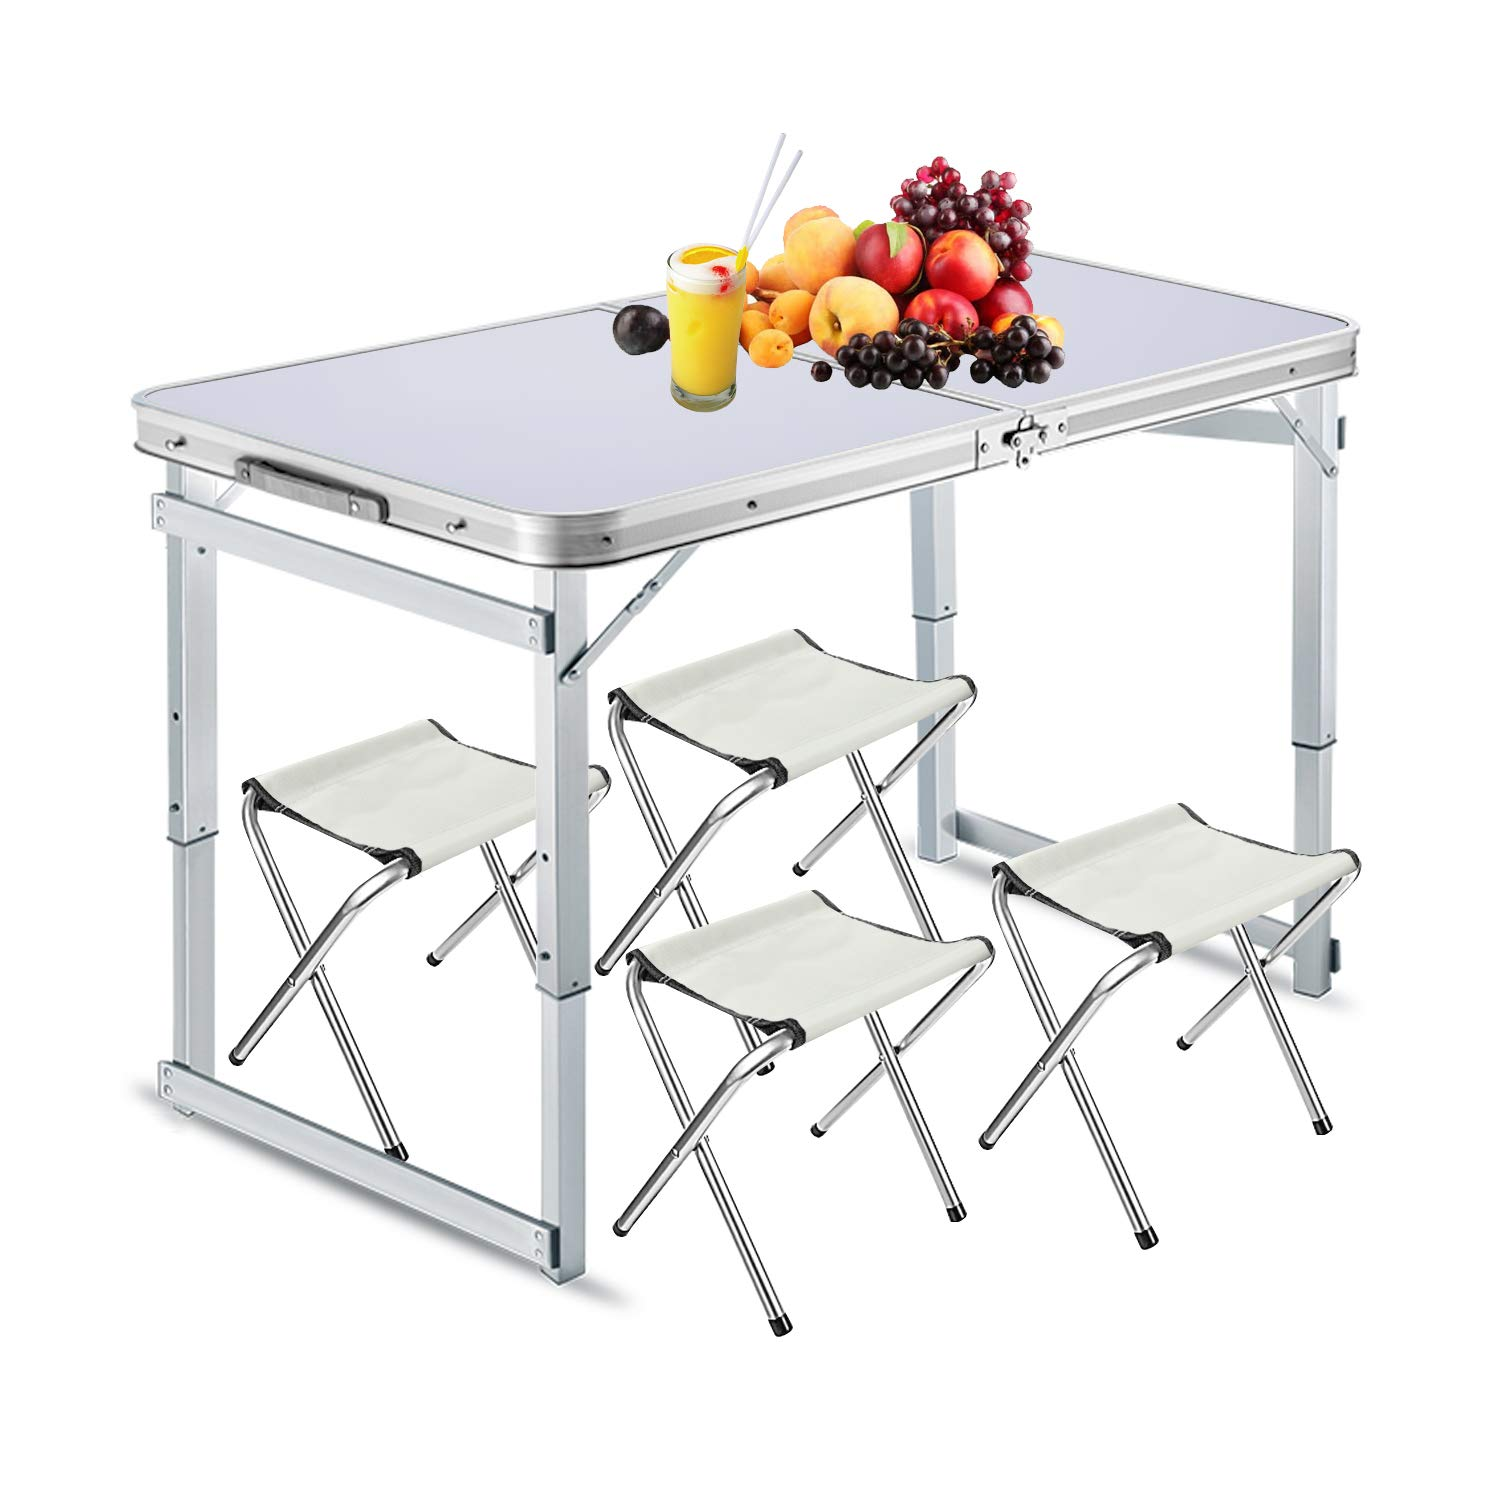 Folding Table Aluminum Lightweight Portable Table Adjustable Height with Carry Handle for Camping Outdoor by O BOSSTOP